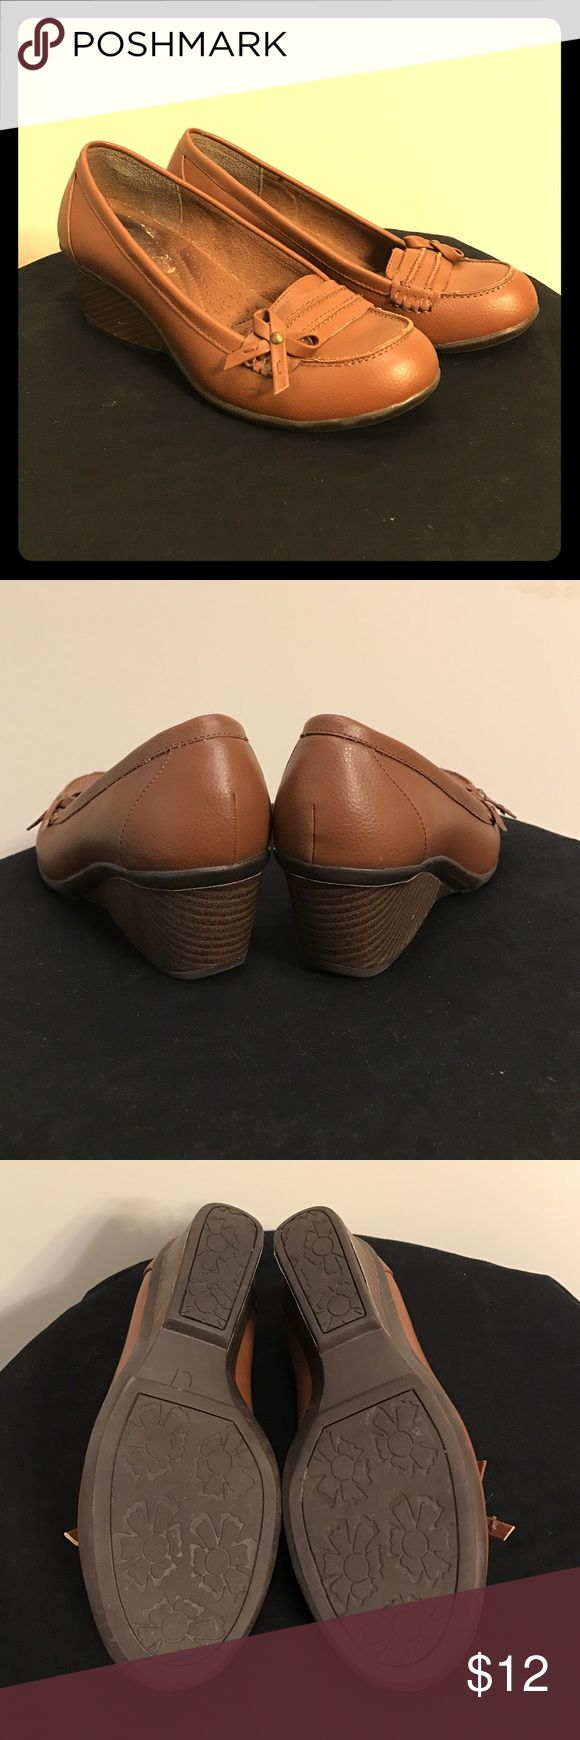 Sbicca Vicky wedge loafers 7.5 This week only! Moving very soon. Items available this week only. Make offers, bundle bundle! Cute Sbicca loafers with bow detail. White reside is the leftover of Price sticker I couldn't remove. Soles look almost new. Sbicca Shoes Wedges